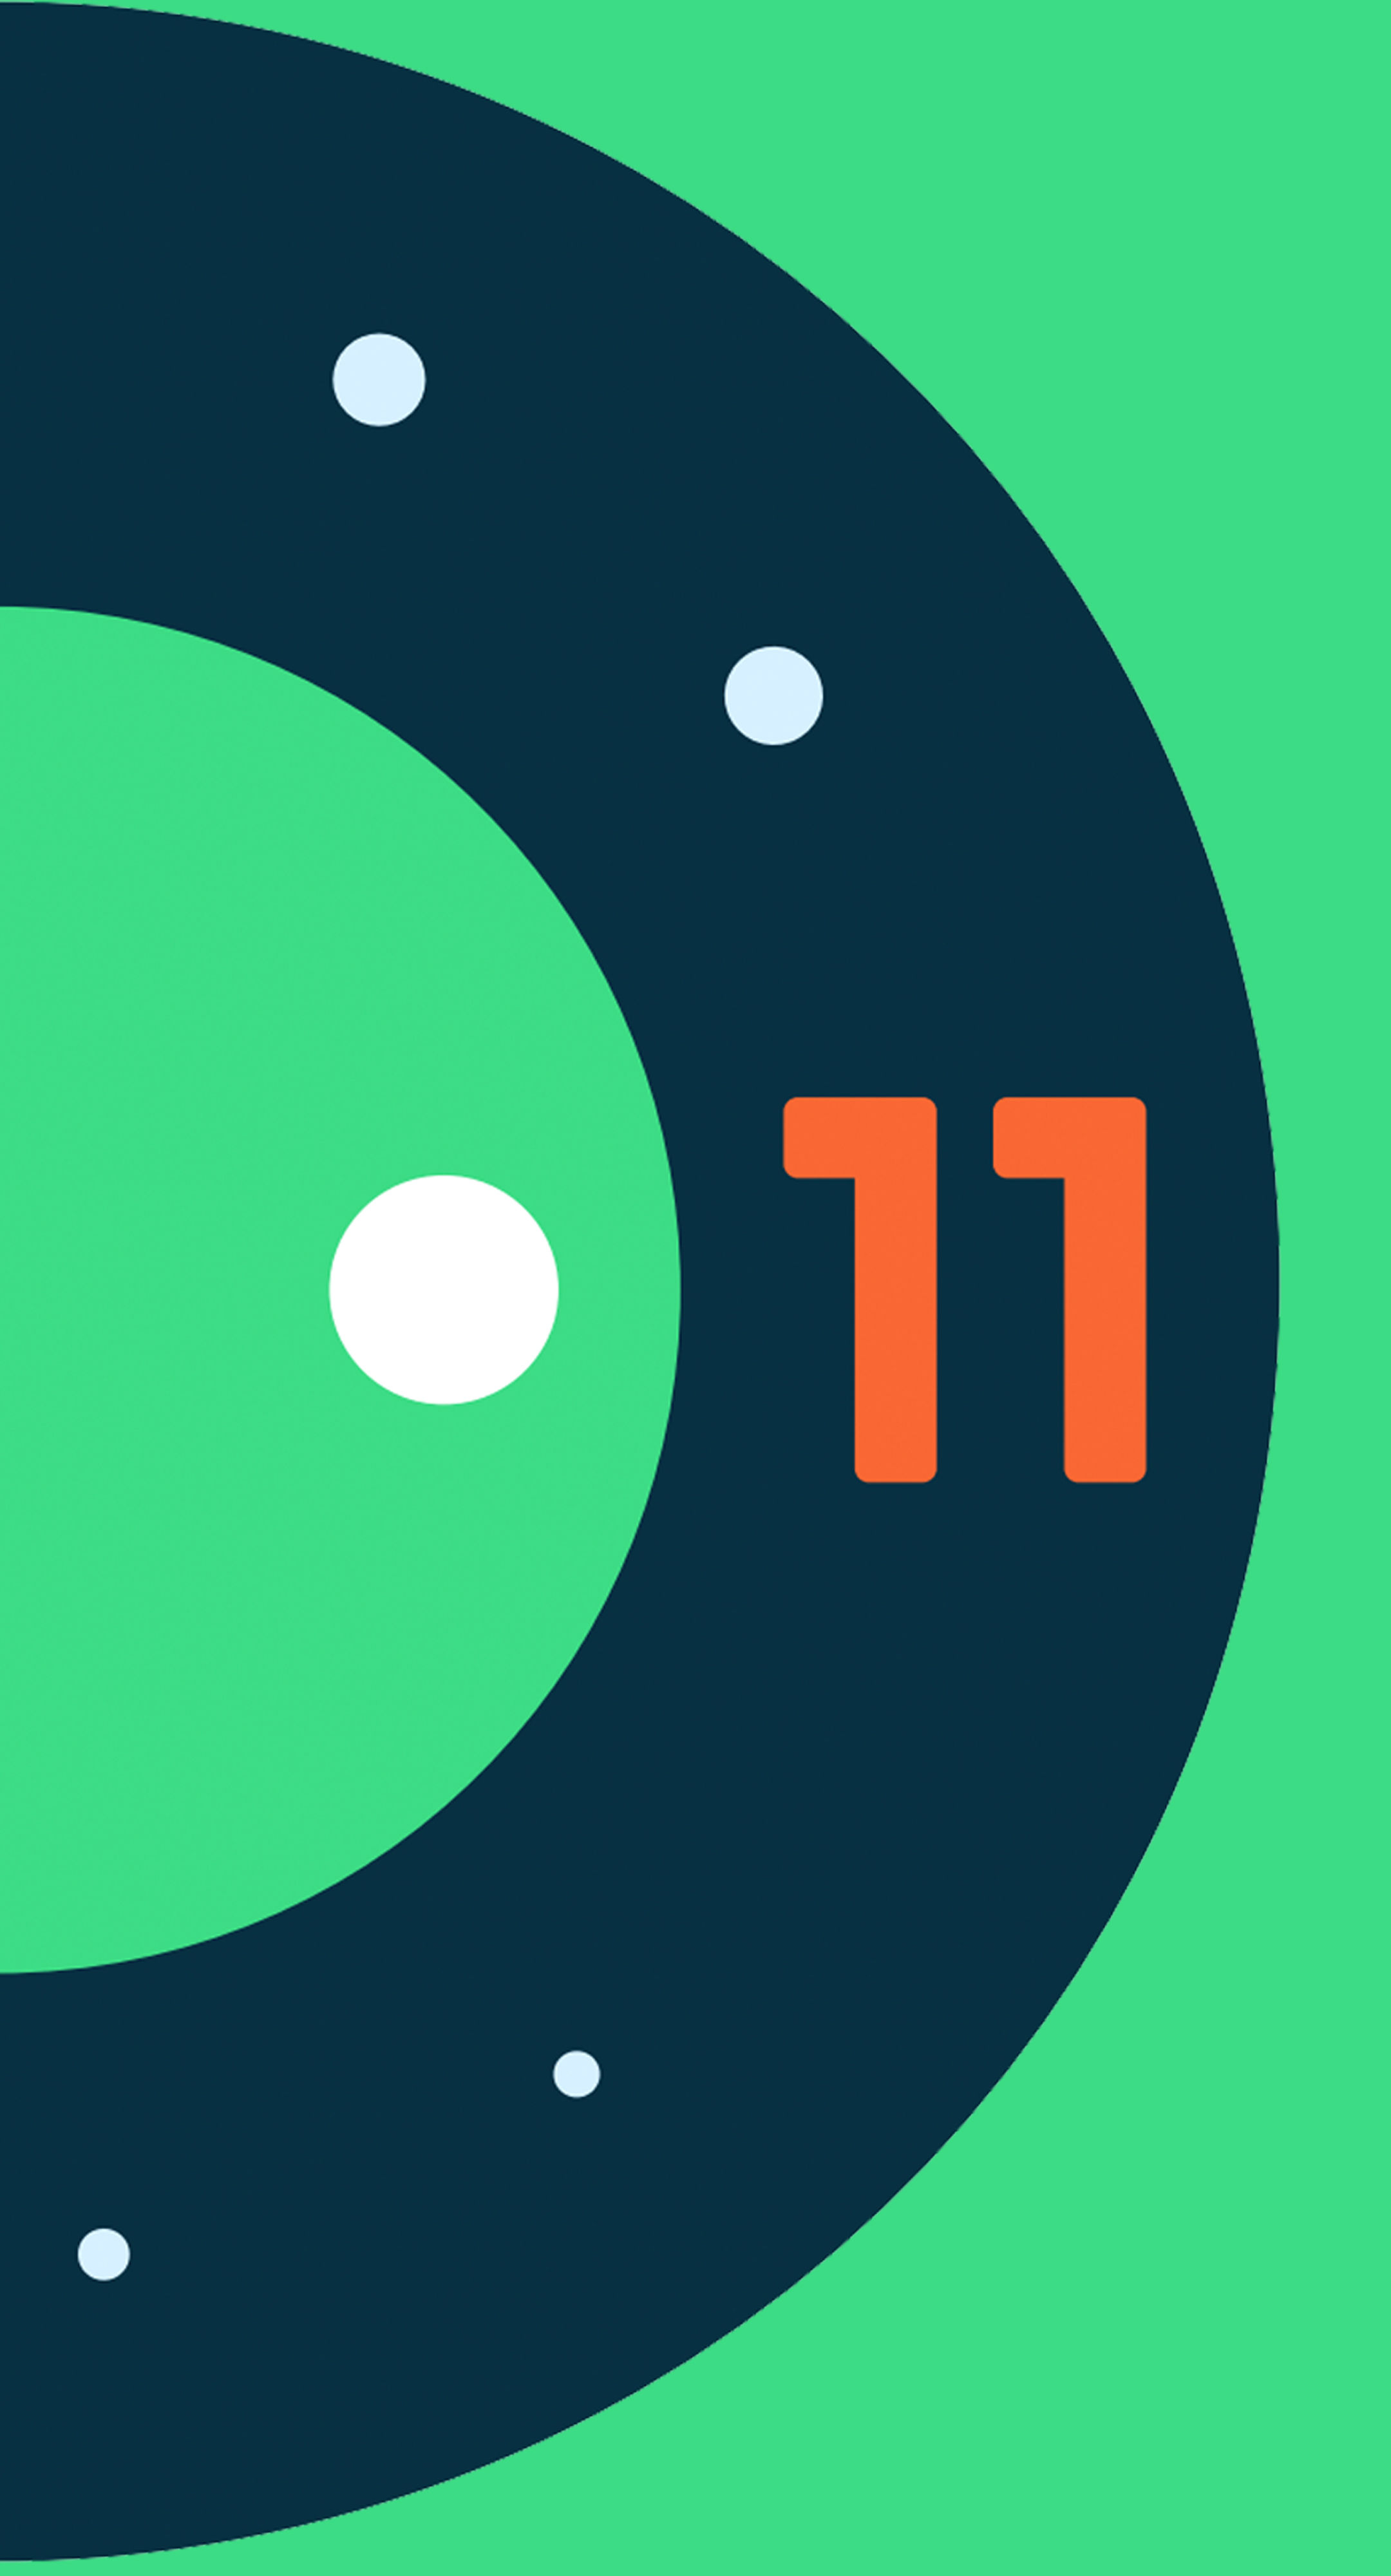 android-11-logo-large-green